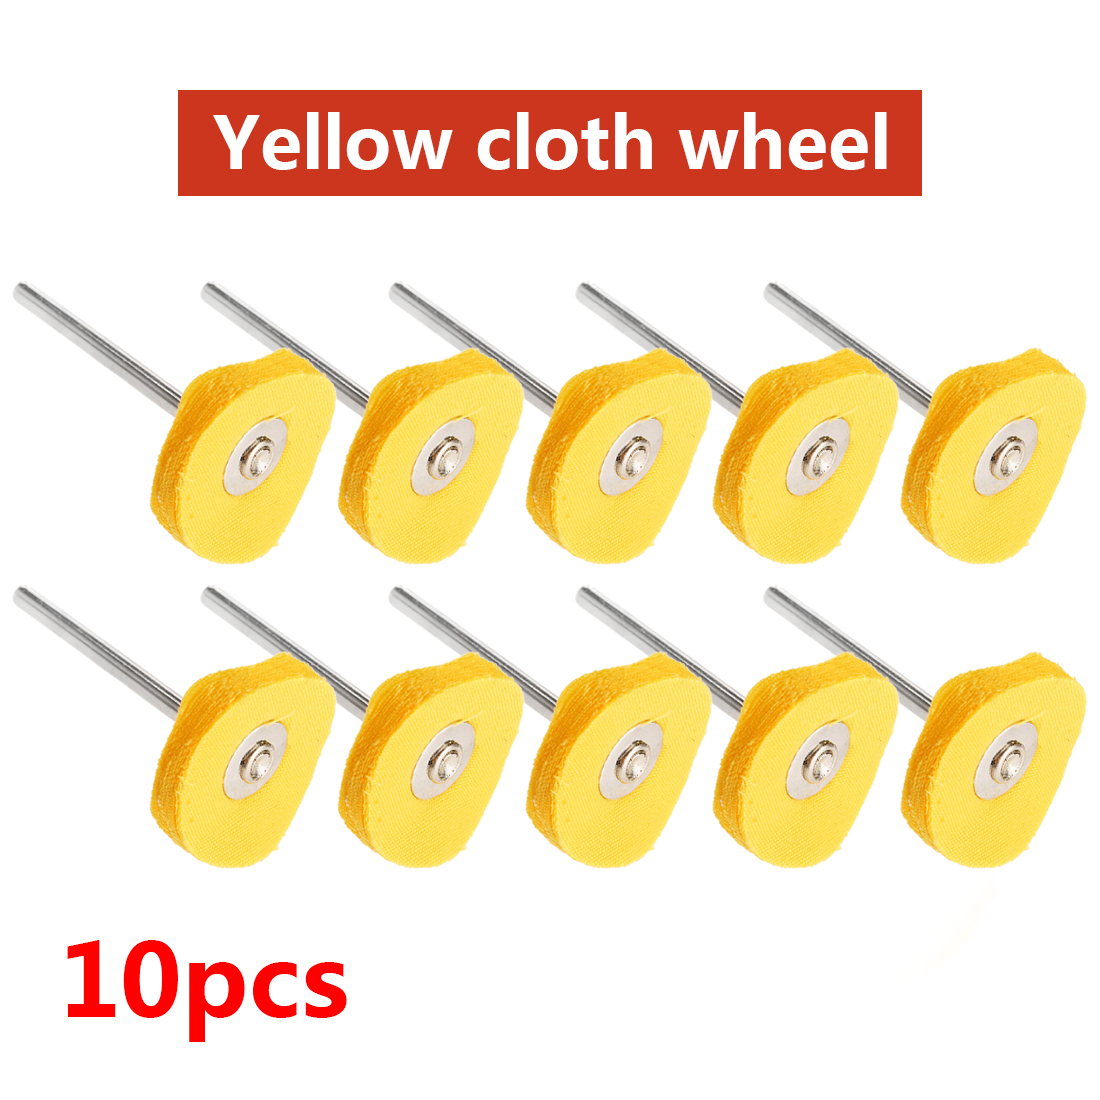 1Pc 22mm Cloth Polishing Mop Brush Drill Buffing Grinding Wheel Pad 2.35mm Shank For Metal Jewelry Dremel Accessories